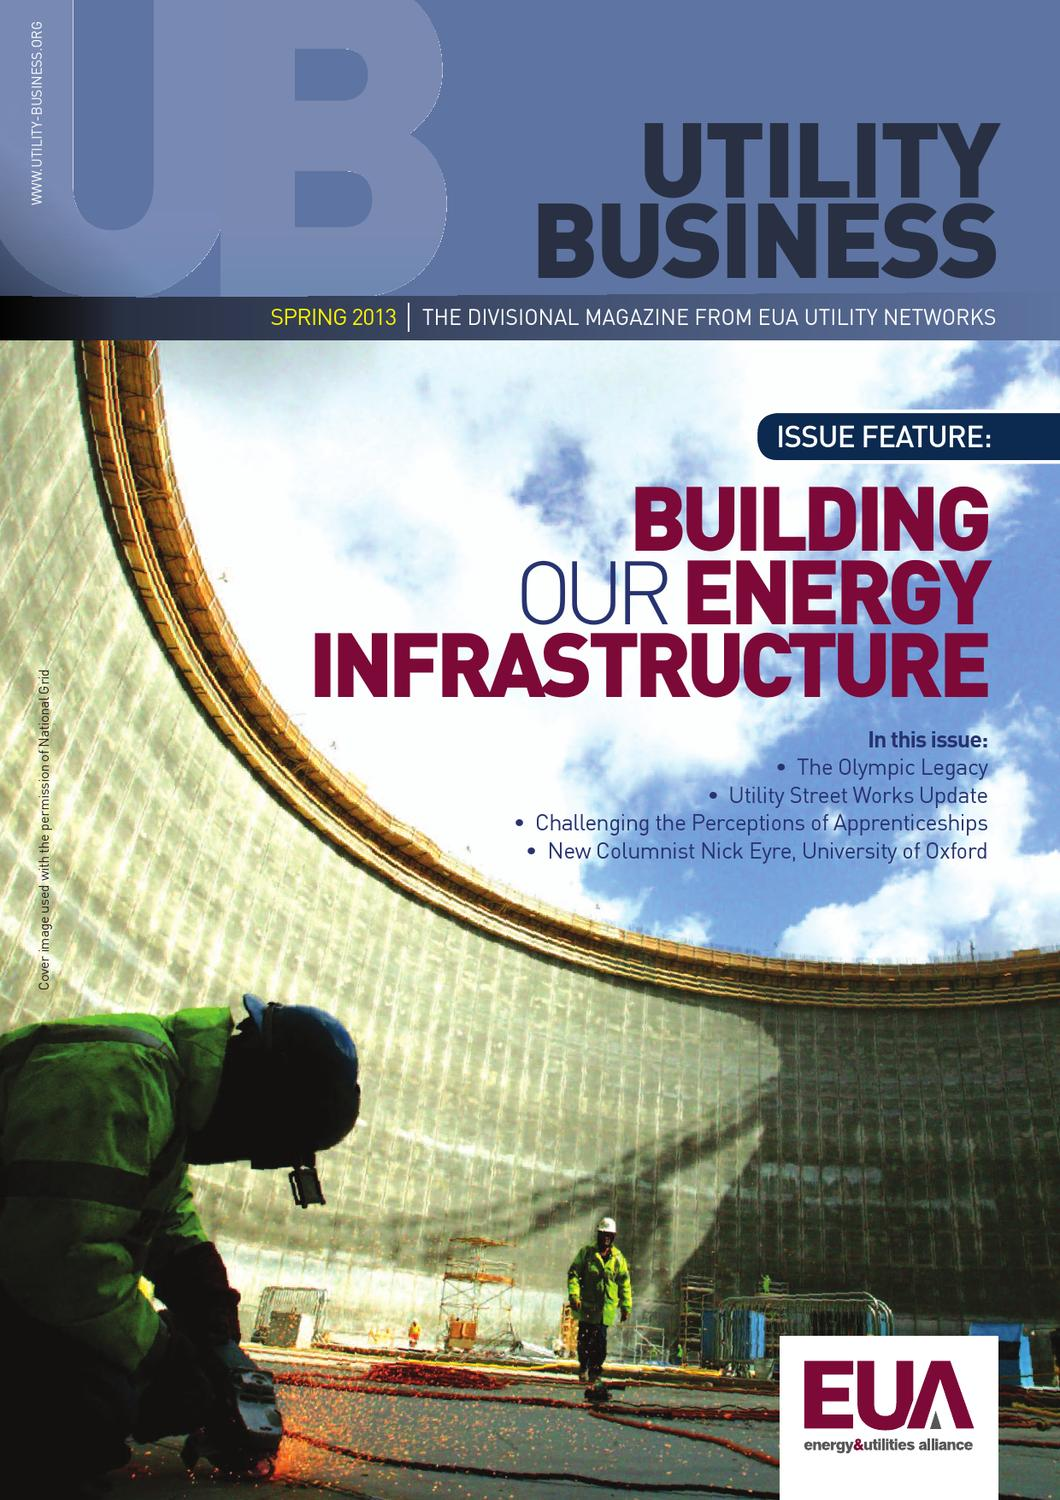 Utility Business Spring 2013 by Energy and Utilities